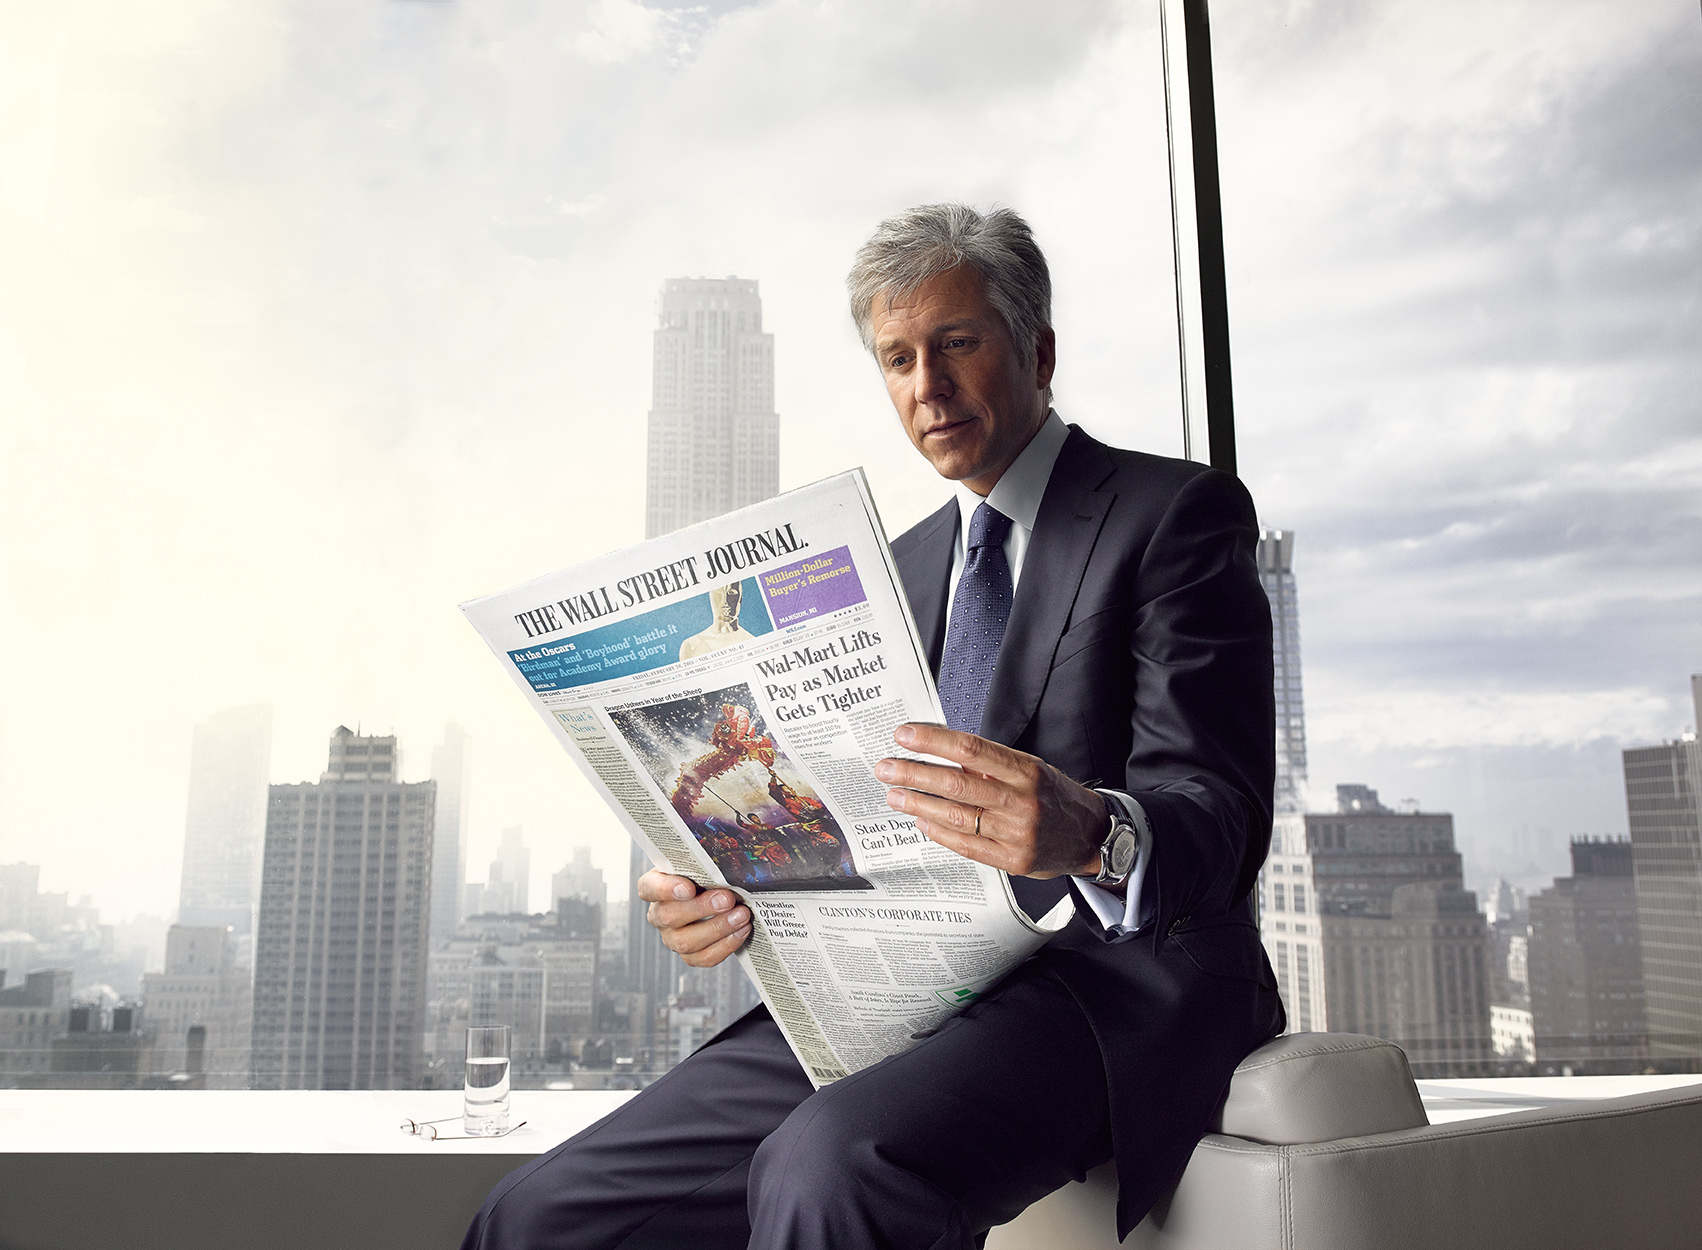 WSJ_BillMcDermott_1250